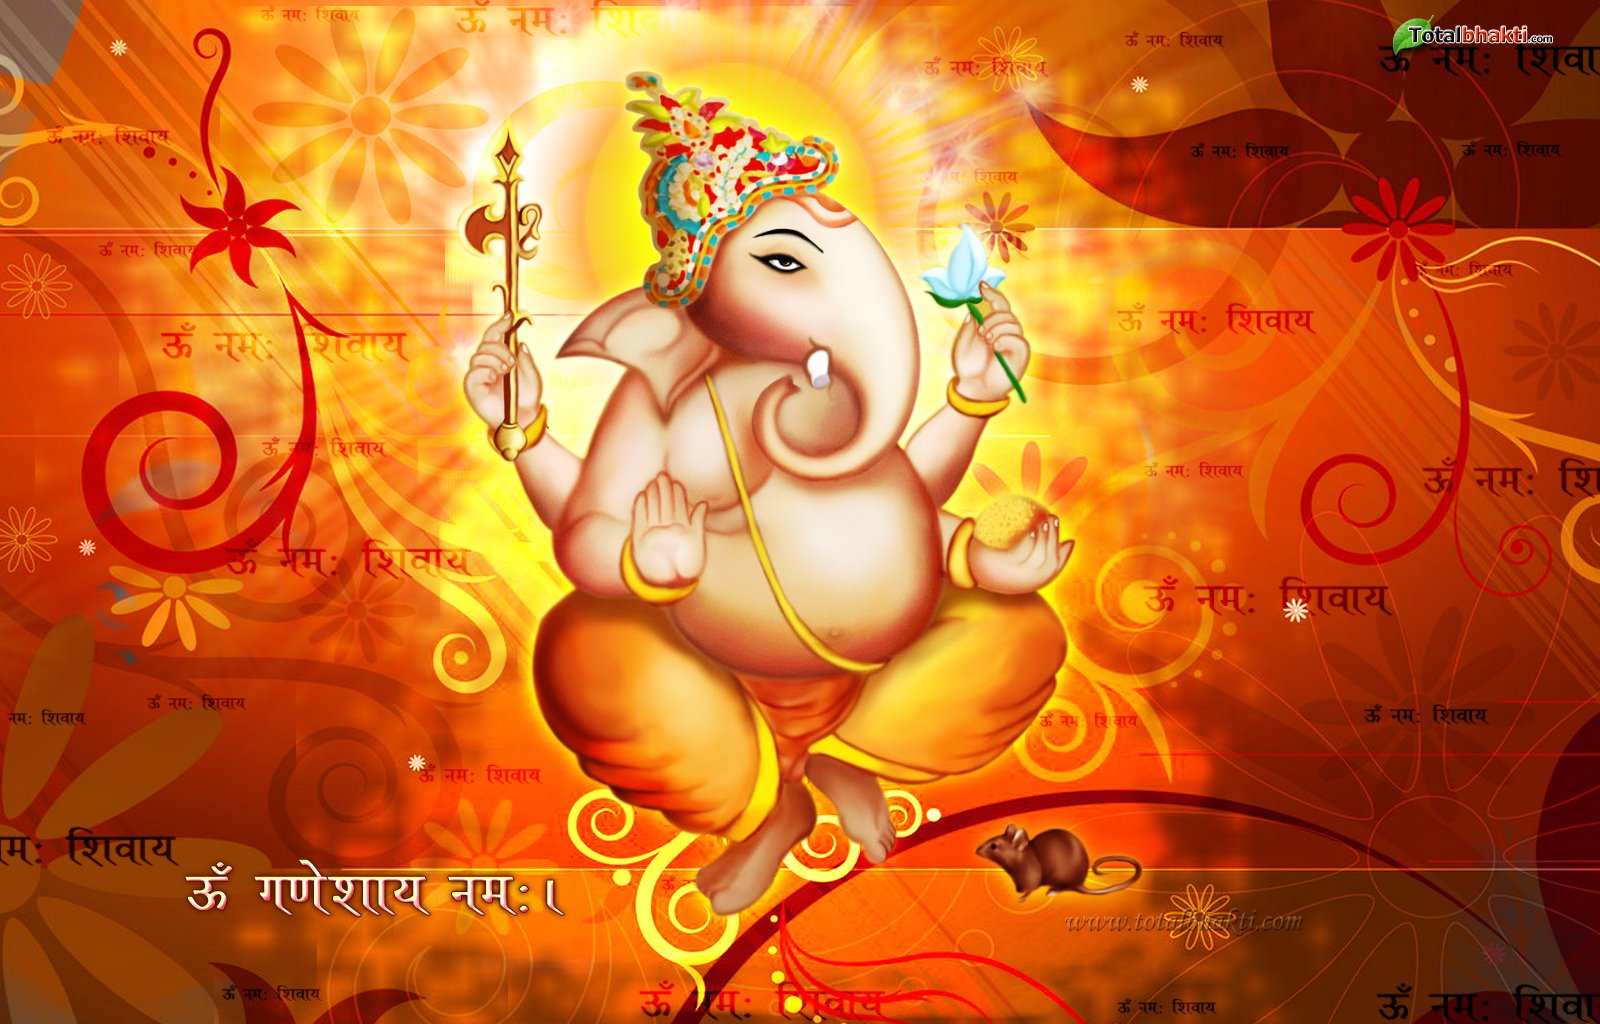 Lord Ganesha Pictures Hd: Lord Ganesh Wallpaper, Free Ganesha Pictures HD, Ganapati